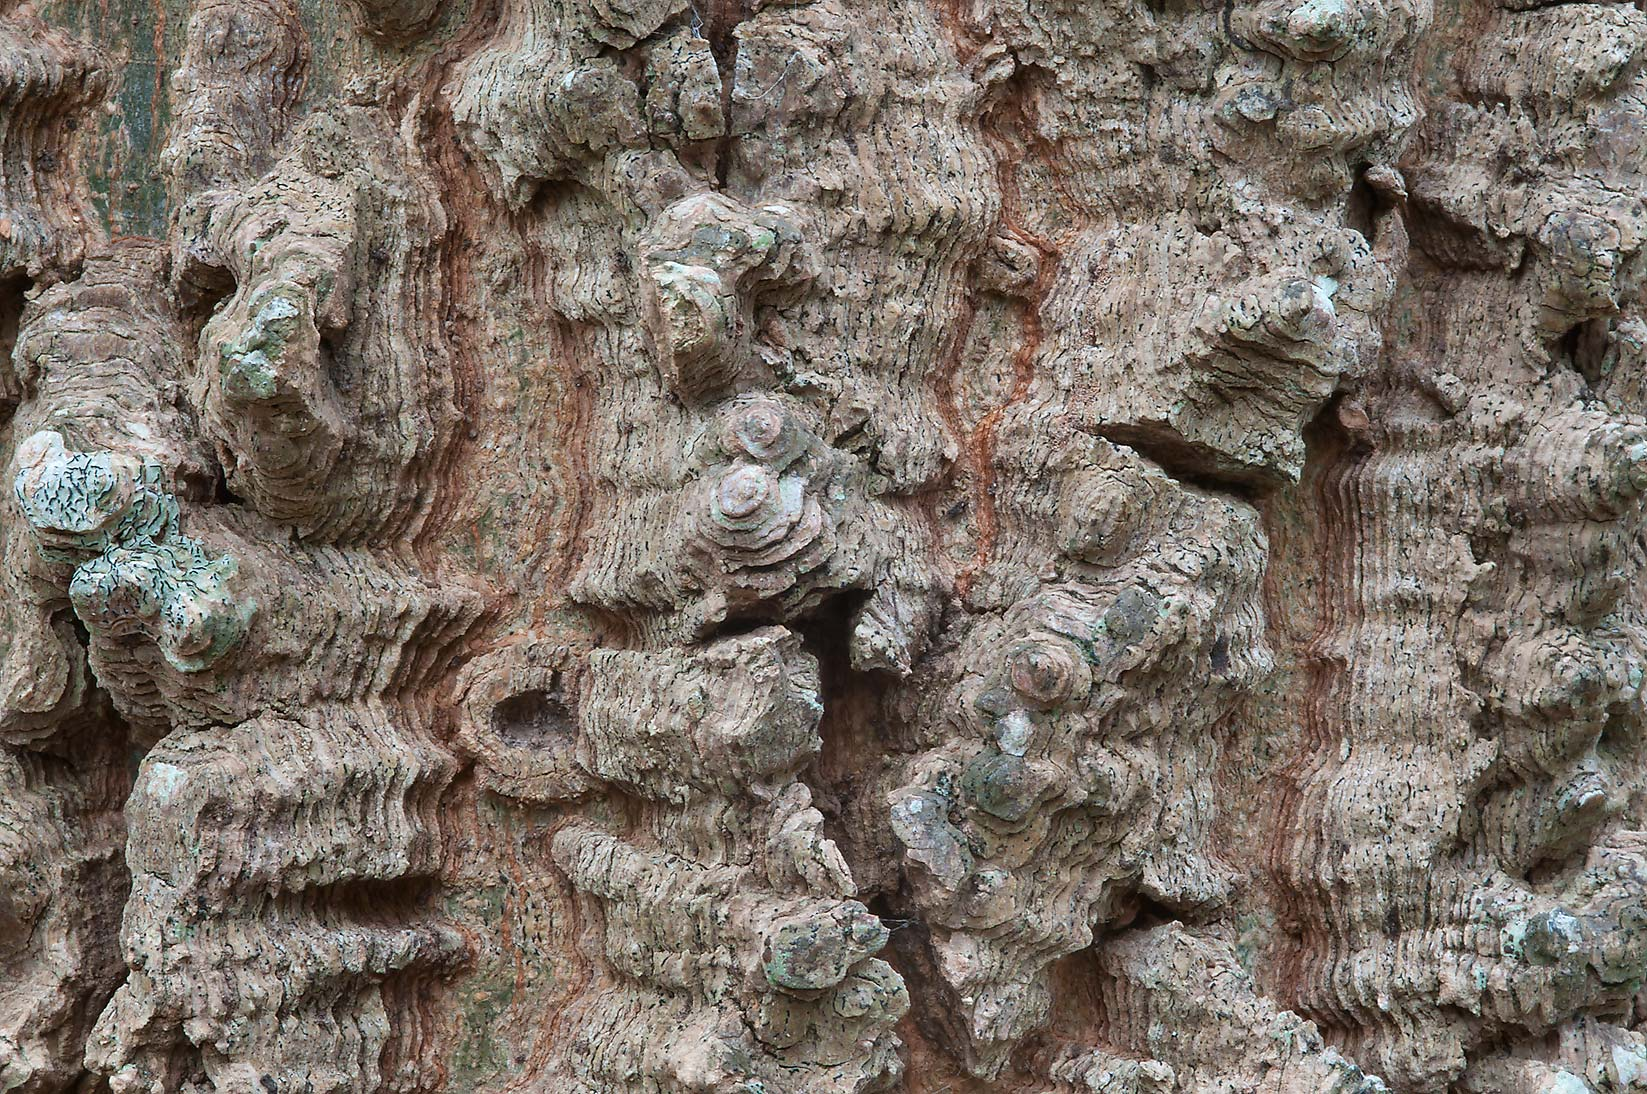 Corky ridges of bark of hackberry (Celtis...State Historic Site. Washington, Texas